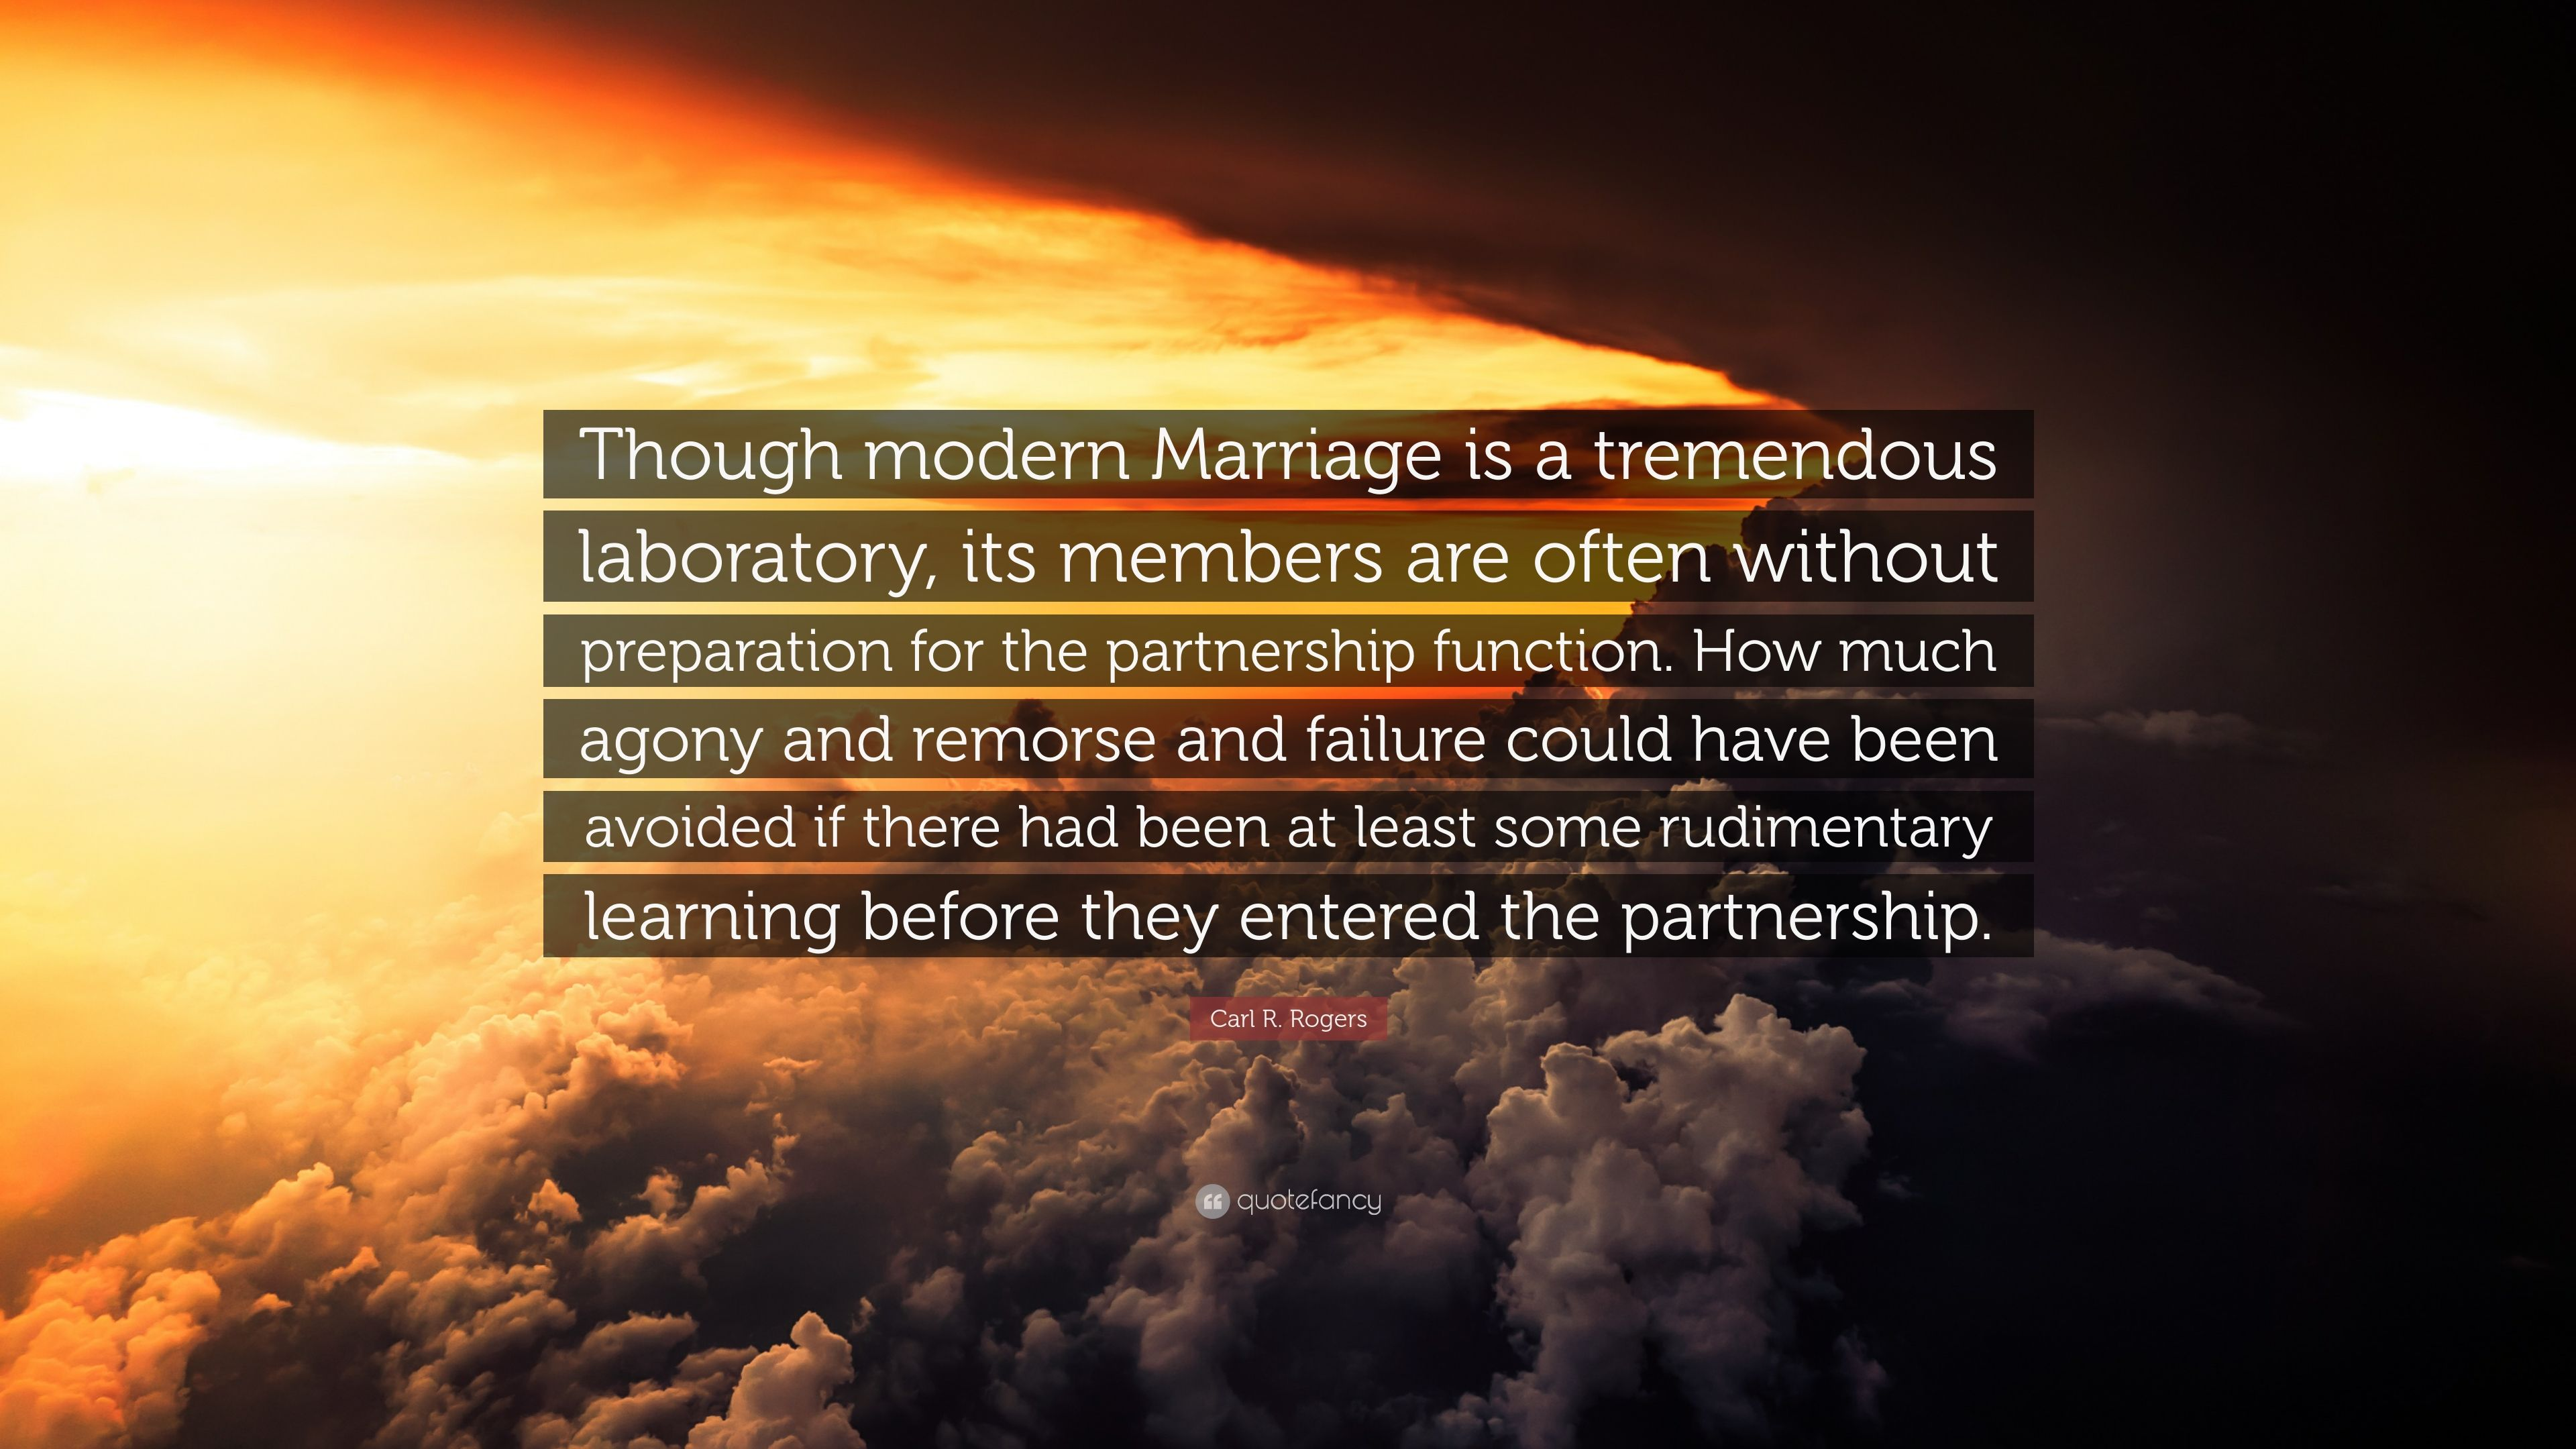 Amazing Carl R. Rogers Quote: U201cThough Modern Marriage Is A Tremendous Laboratory,  Its